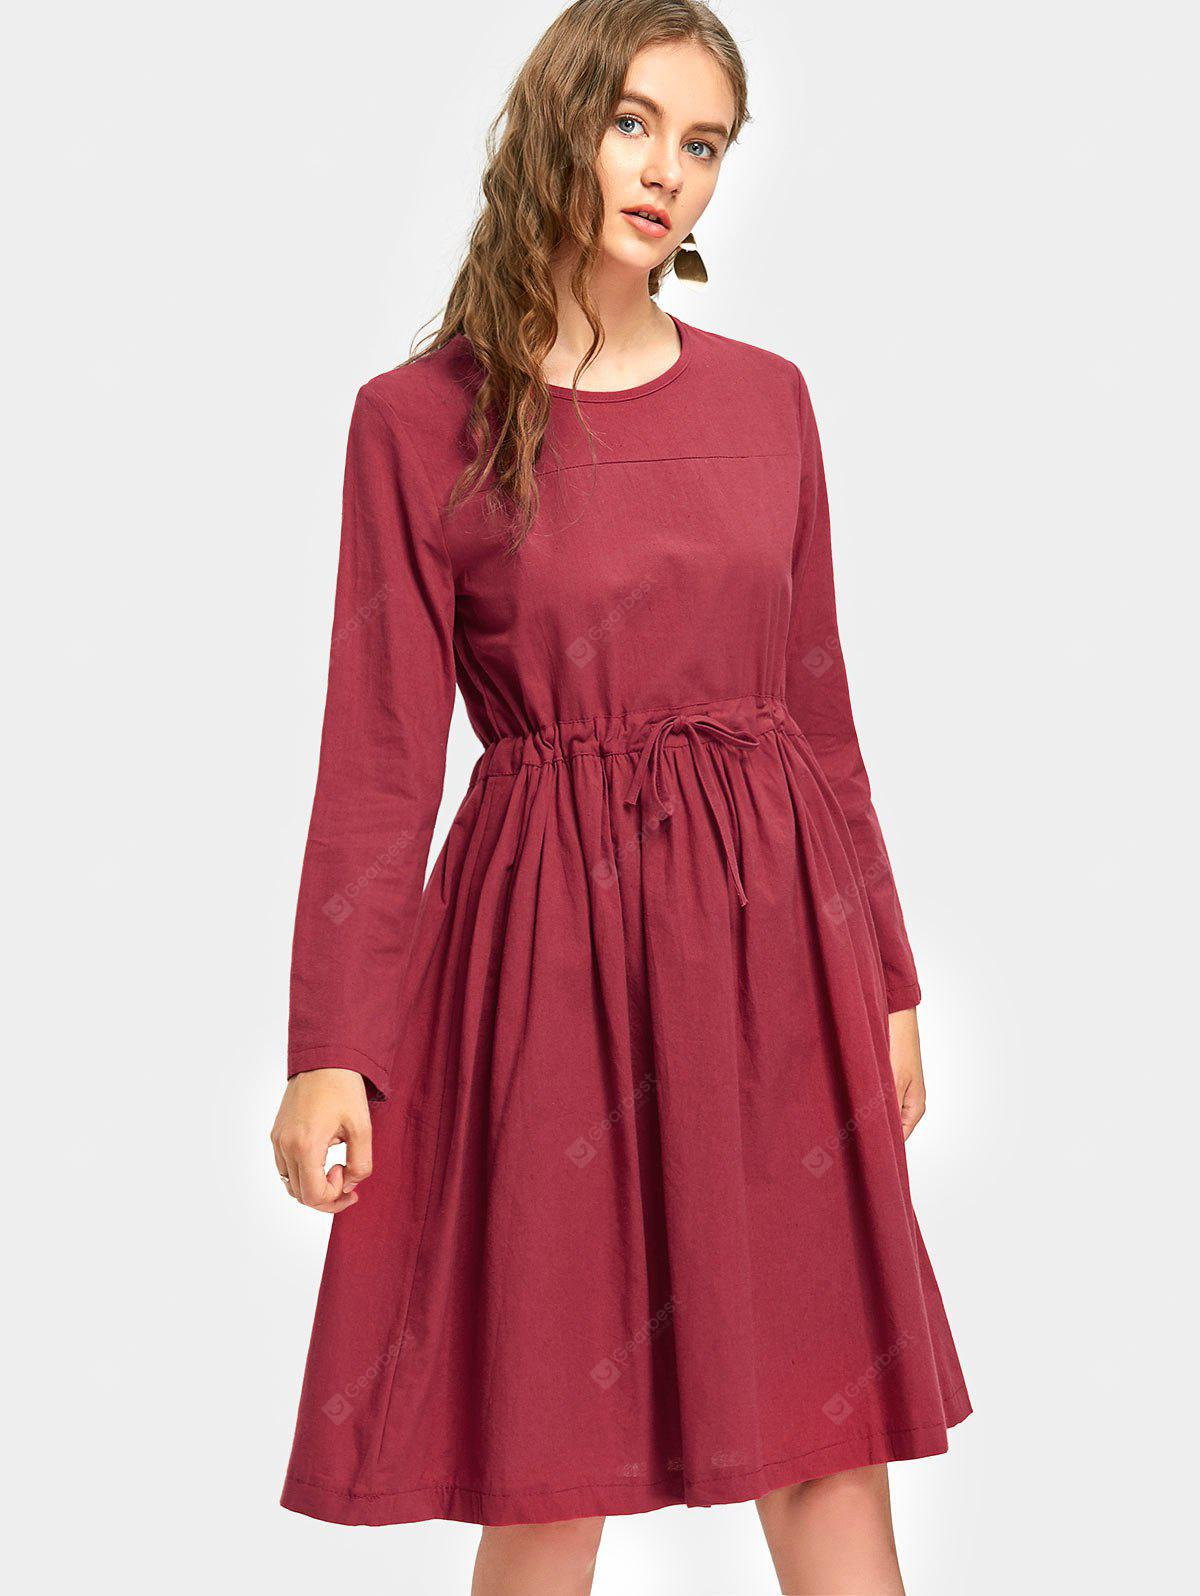 Drawstring Waist Long Sleeve A Line Dress